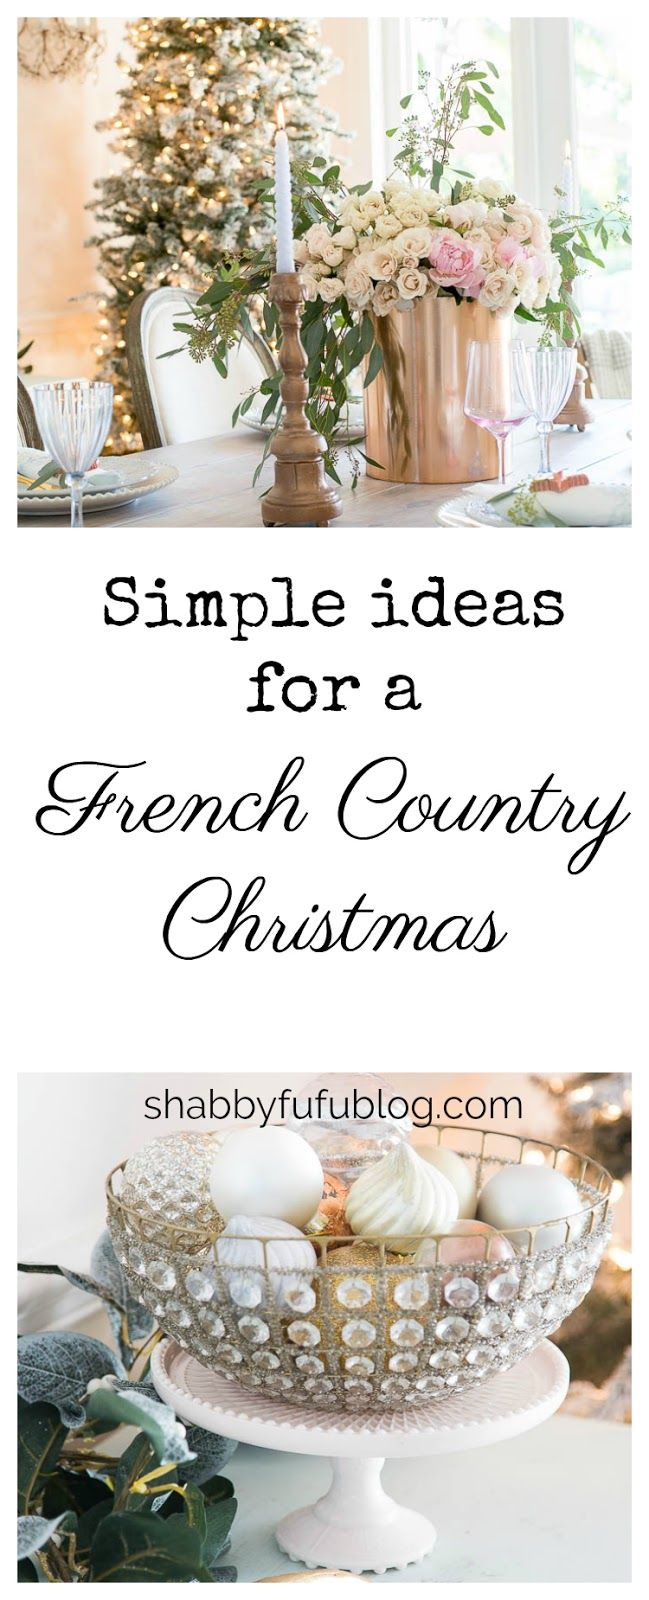 How To Create A Beautifully French Country Christmas #ChristmasDiningRoomDecor #flockedtree #Frenchcountrychristmas